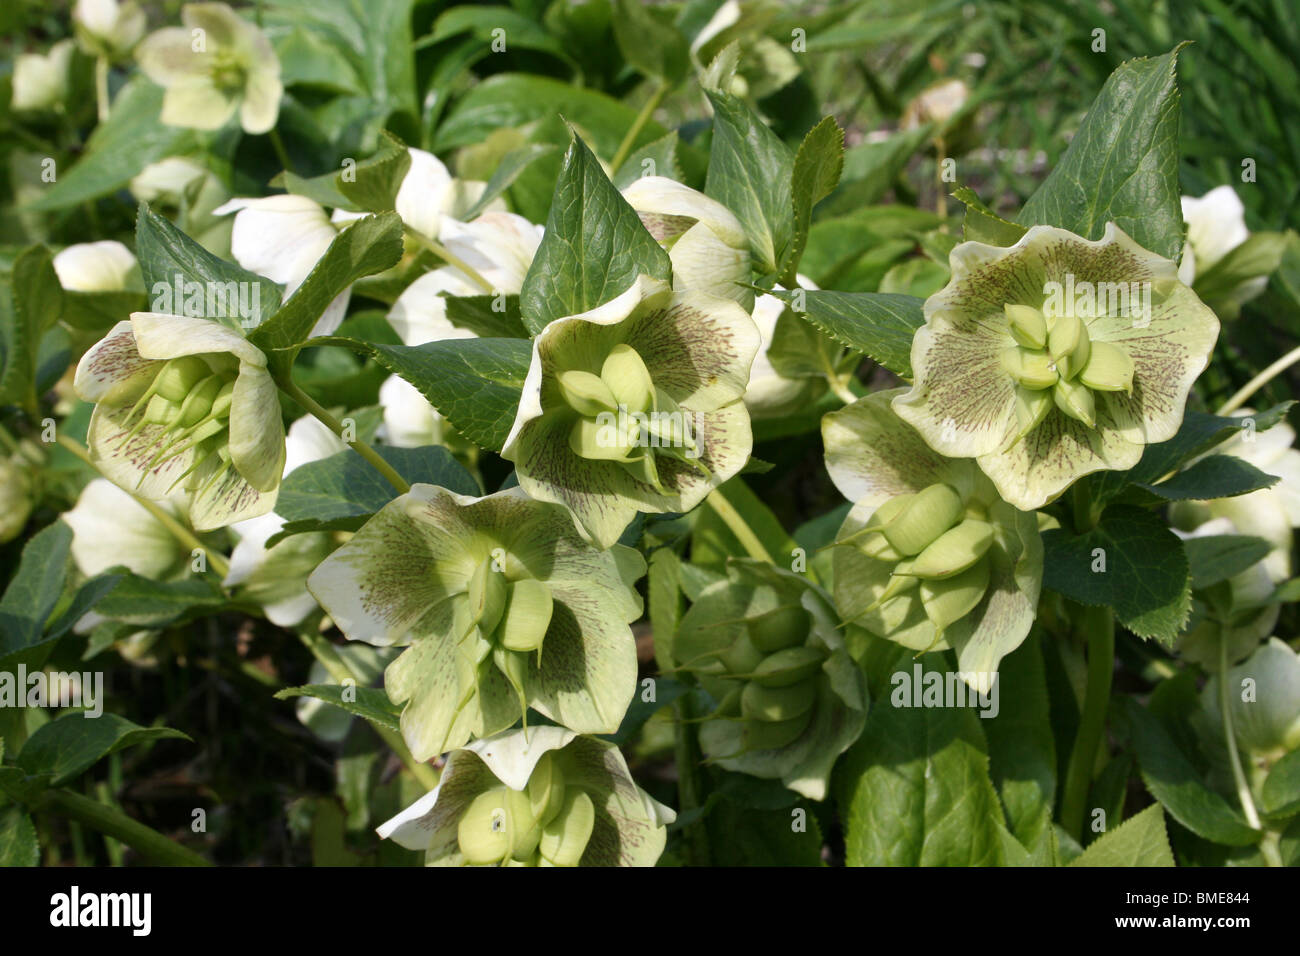 Hellebore Seed Stock Photos Hellebore Seed Stock Images Alamy